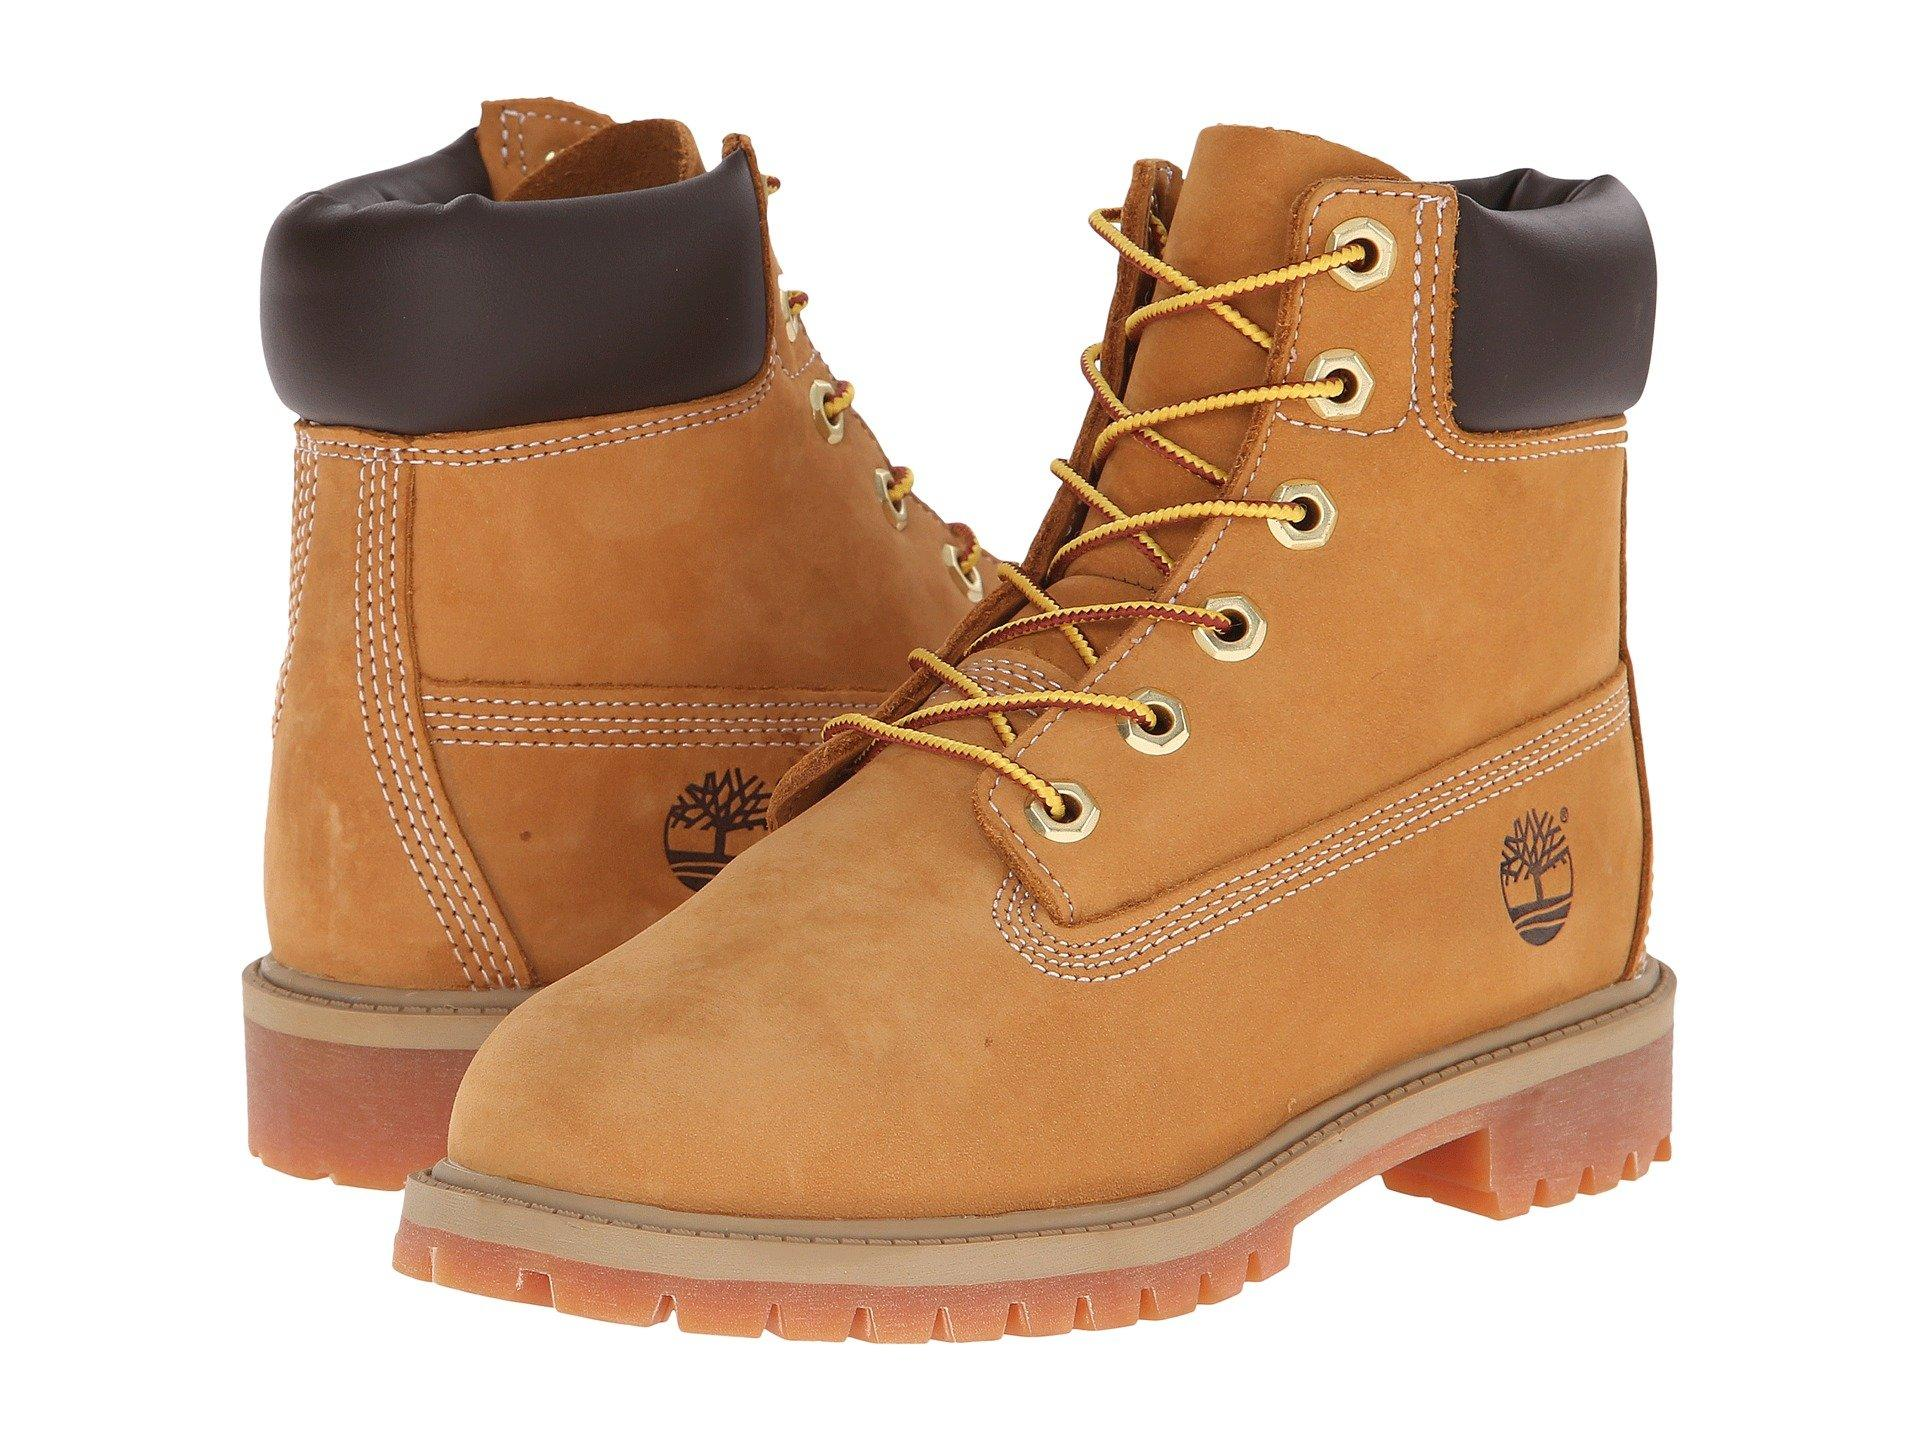 Real vs Fake Timberland Premium 6″ Boots Staff that feel good work good, so kitting our staff out in Timberland 6″ boots seemed like the only logical option. Which in turn took us in an unusual direction when the only pair of boots we didn't order direct from Timberland directly proved to .